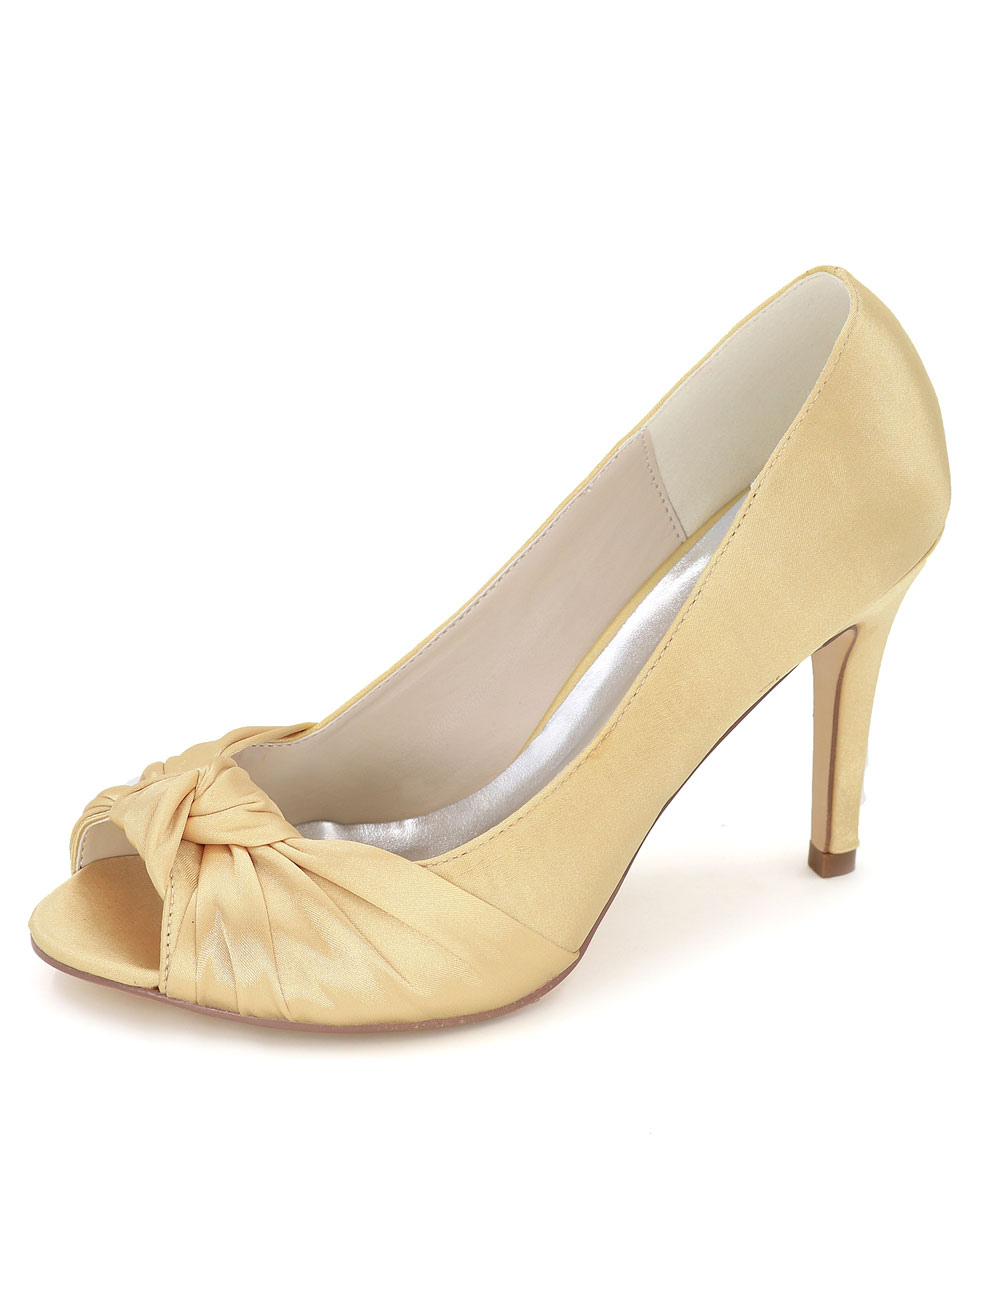 Peep Wedding Shoes Twisted Detail Satin High Heel Bridal Shoes